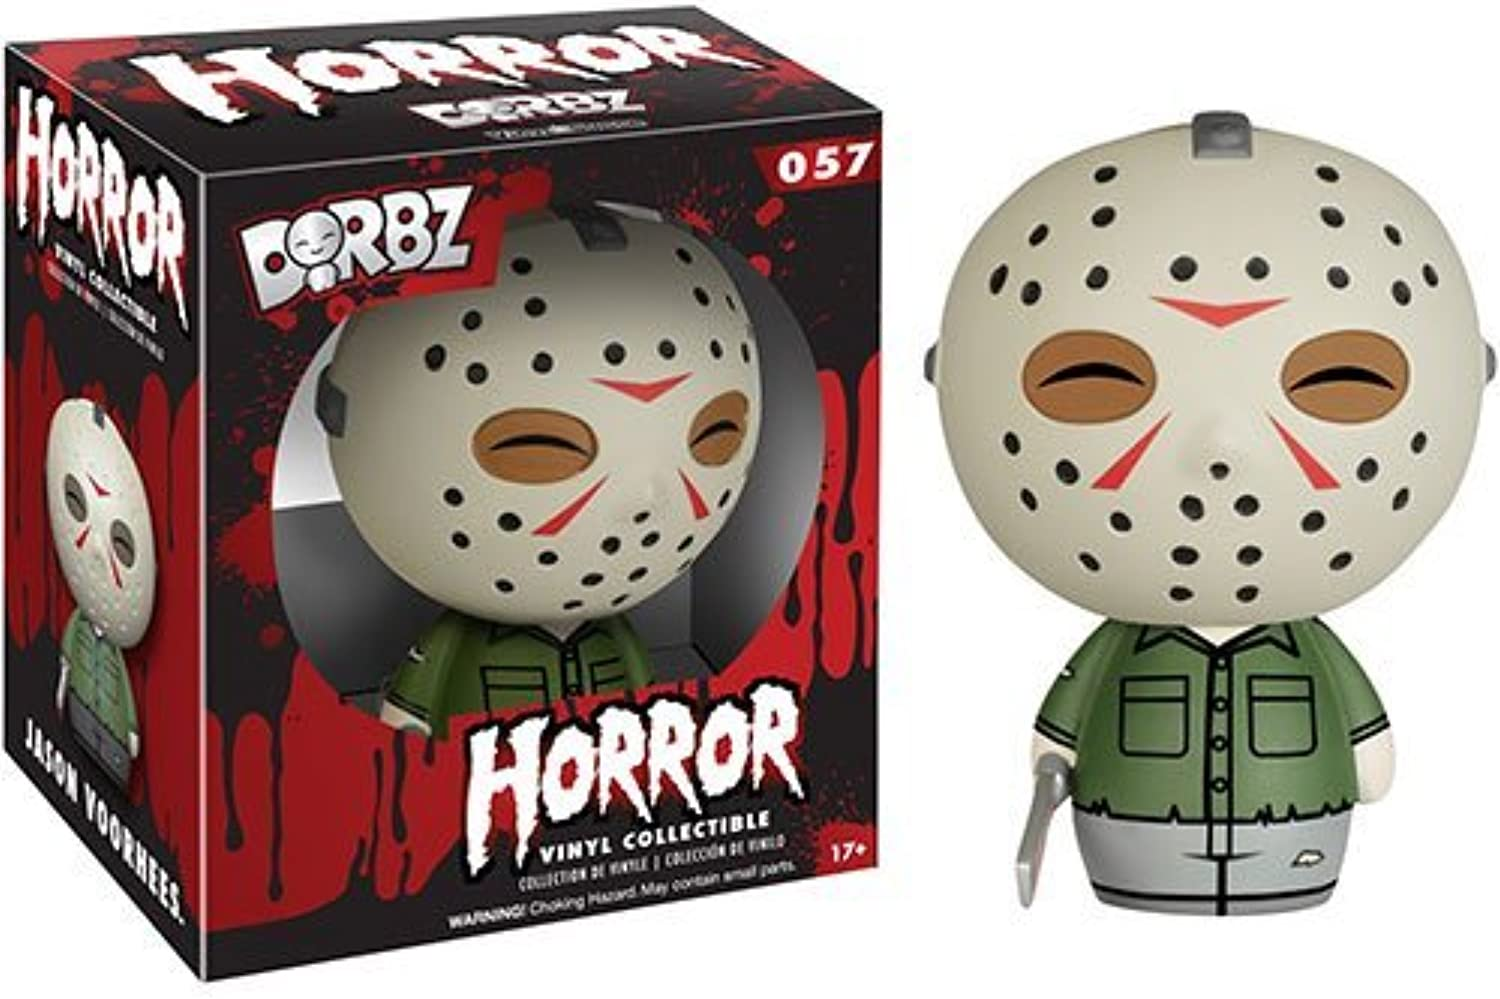 Friday the 13th Jason Voorhees Dorbz Vinyl cifra by Friday The 13th